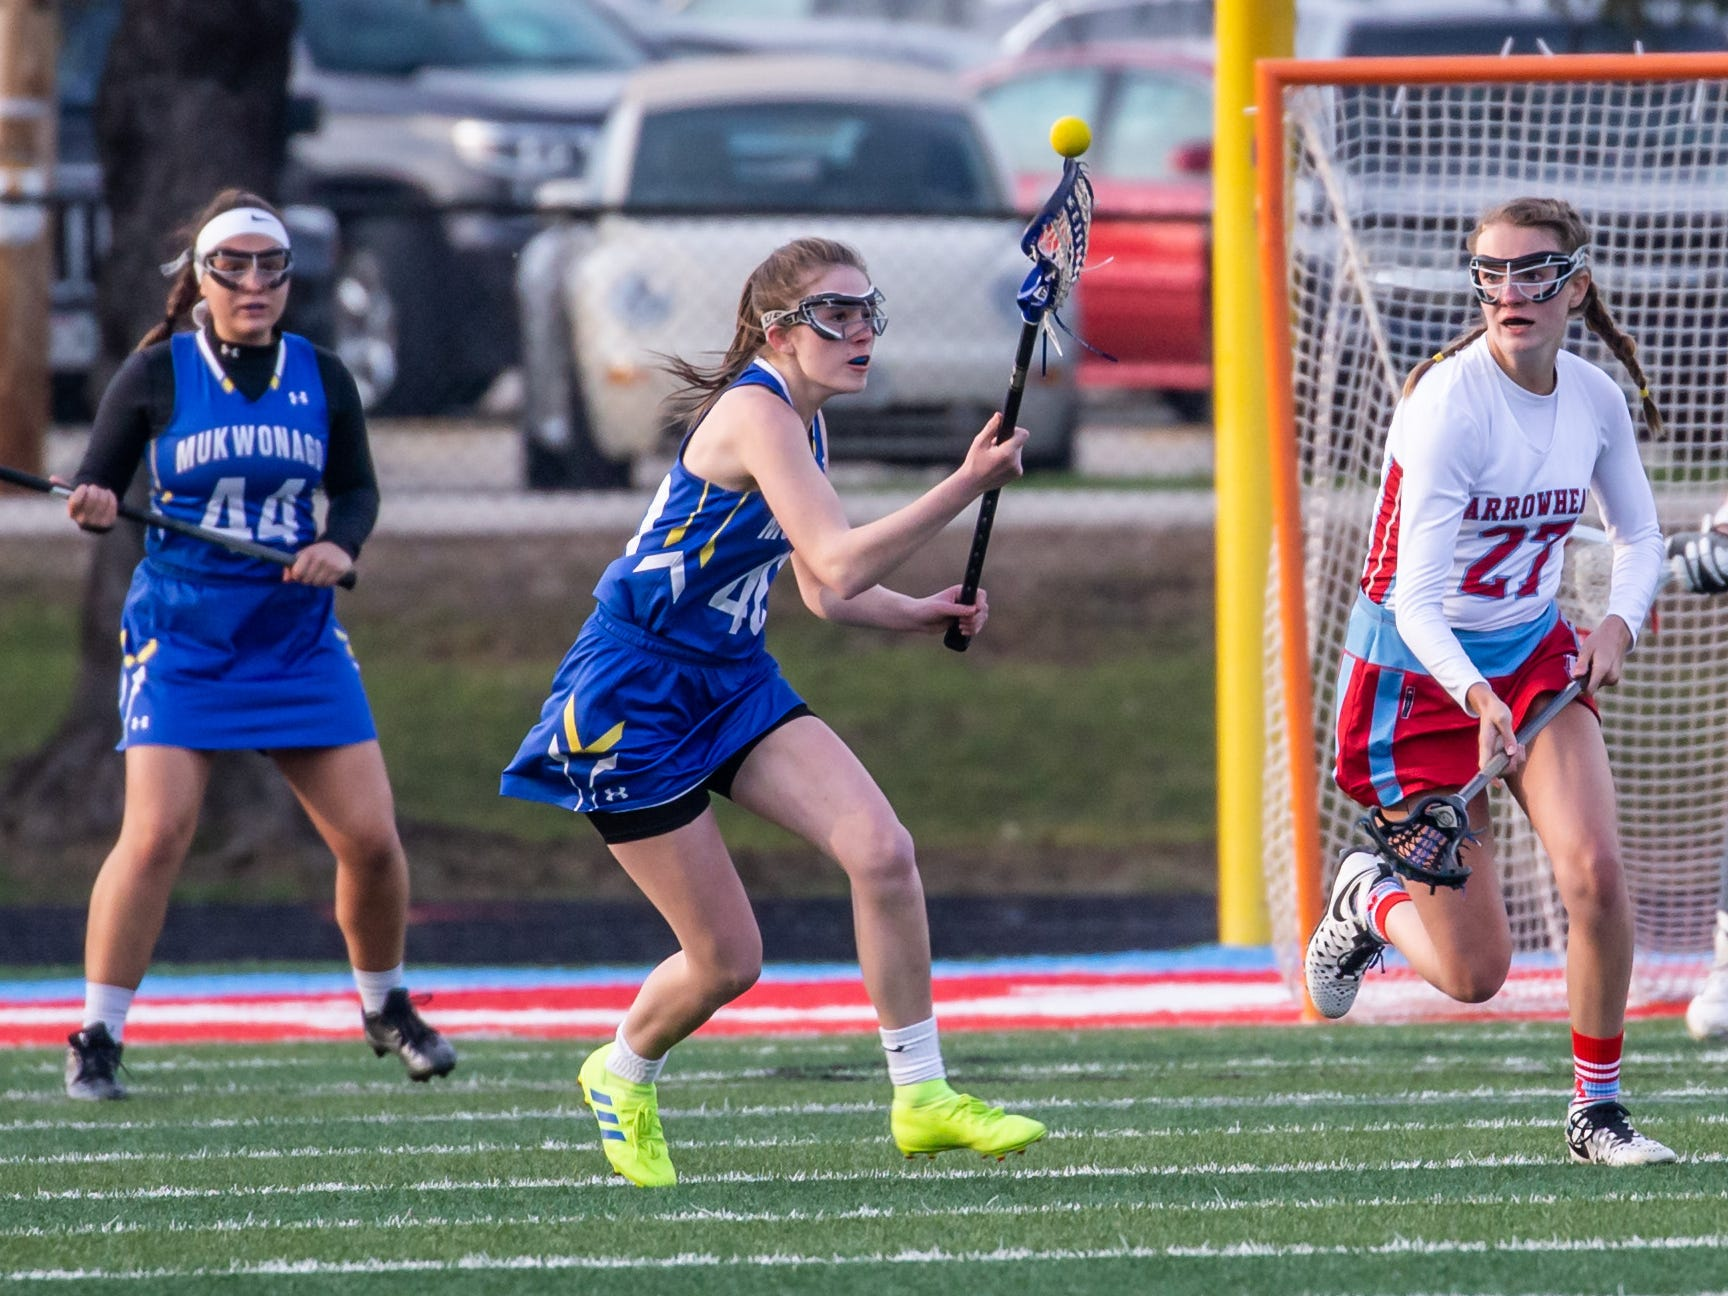 Mukwonago's Sarah Burton (40) scoops up a loose ball during the game at Arrowhead on Tuesday, April 16, 2019.